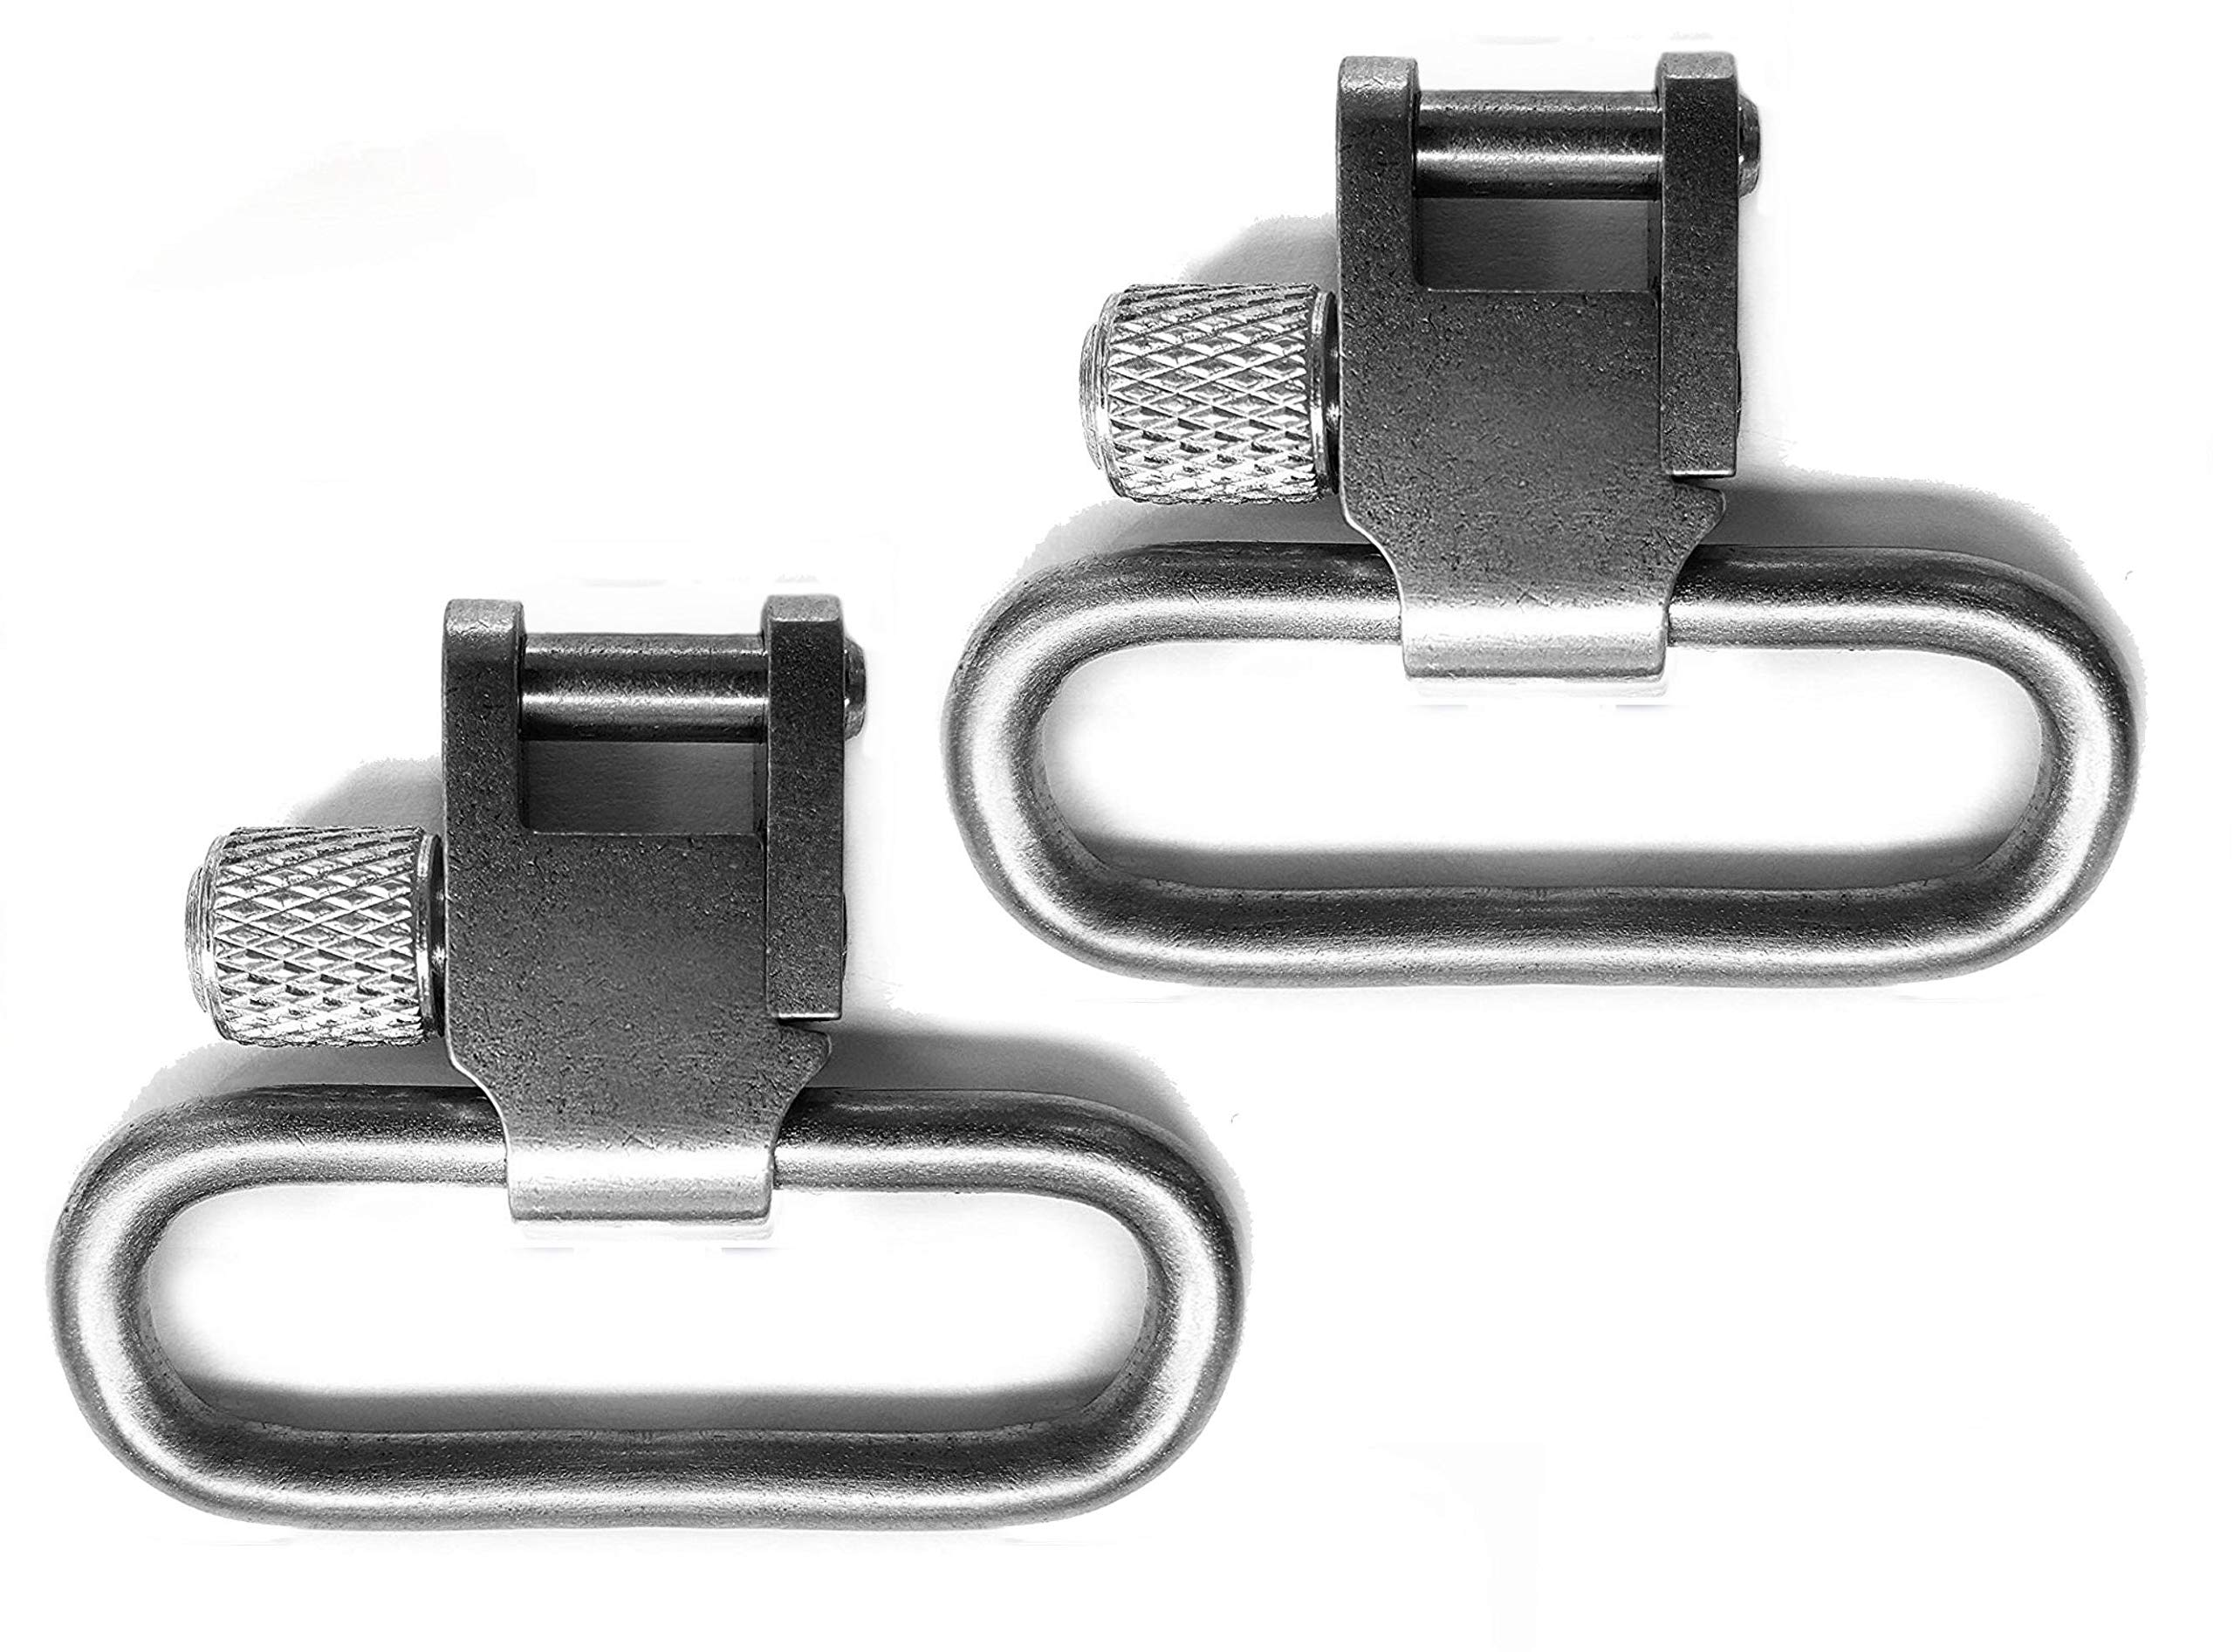 Detroit Leather Shop Pair of Nickel Silver Finish 1.25 Inch Tri-Lock Rifle Sling Swivels by Detroit Leather Shop